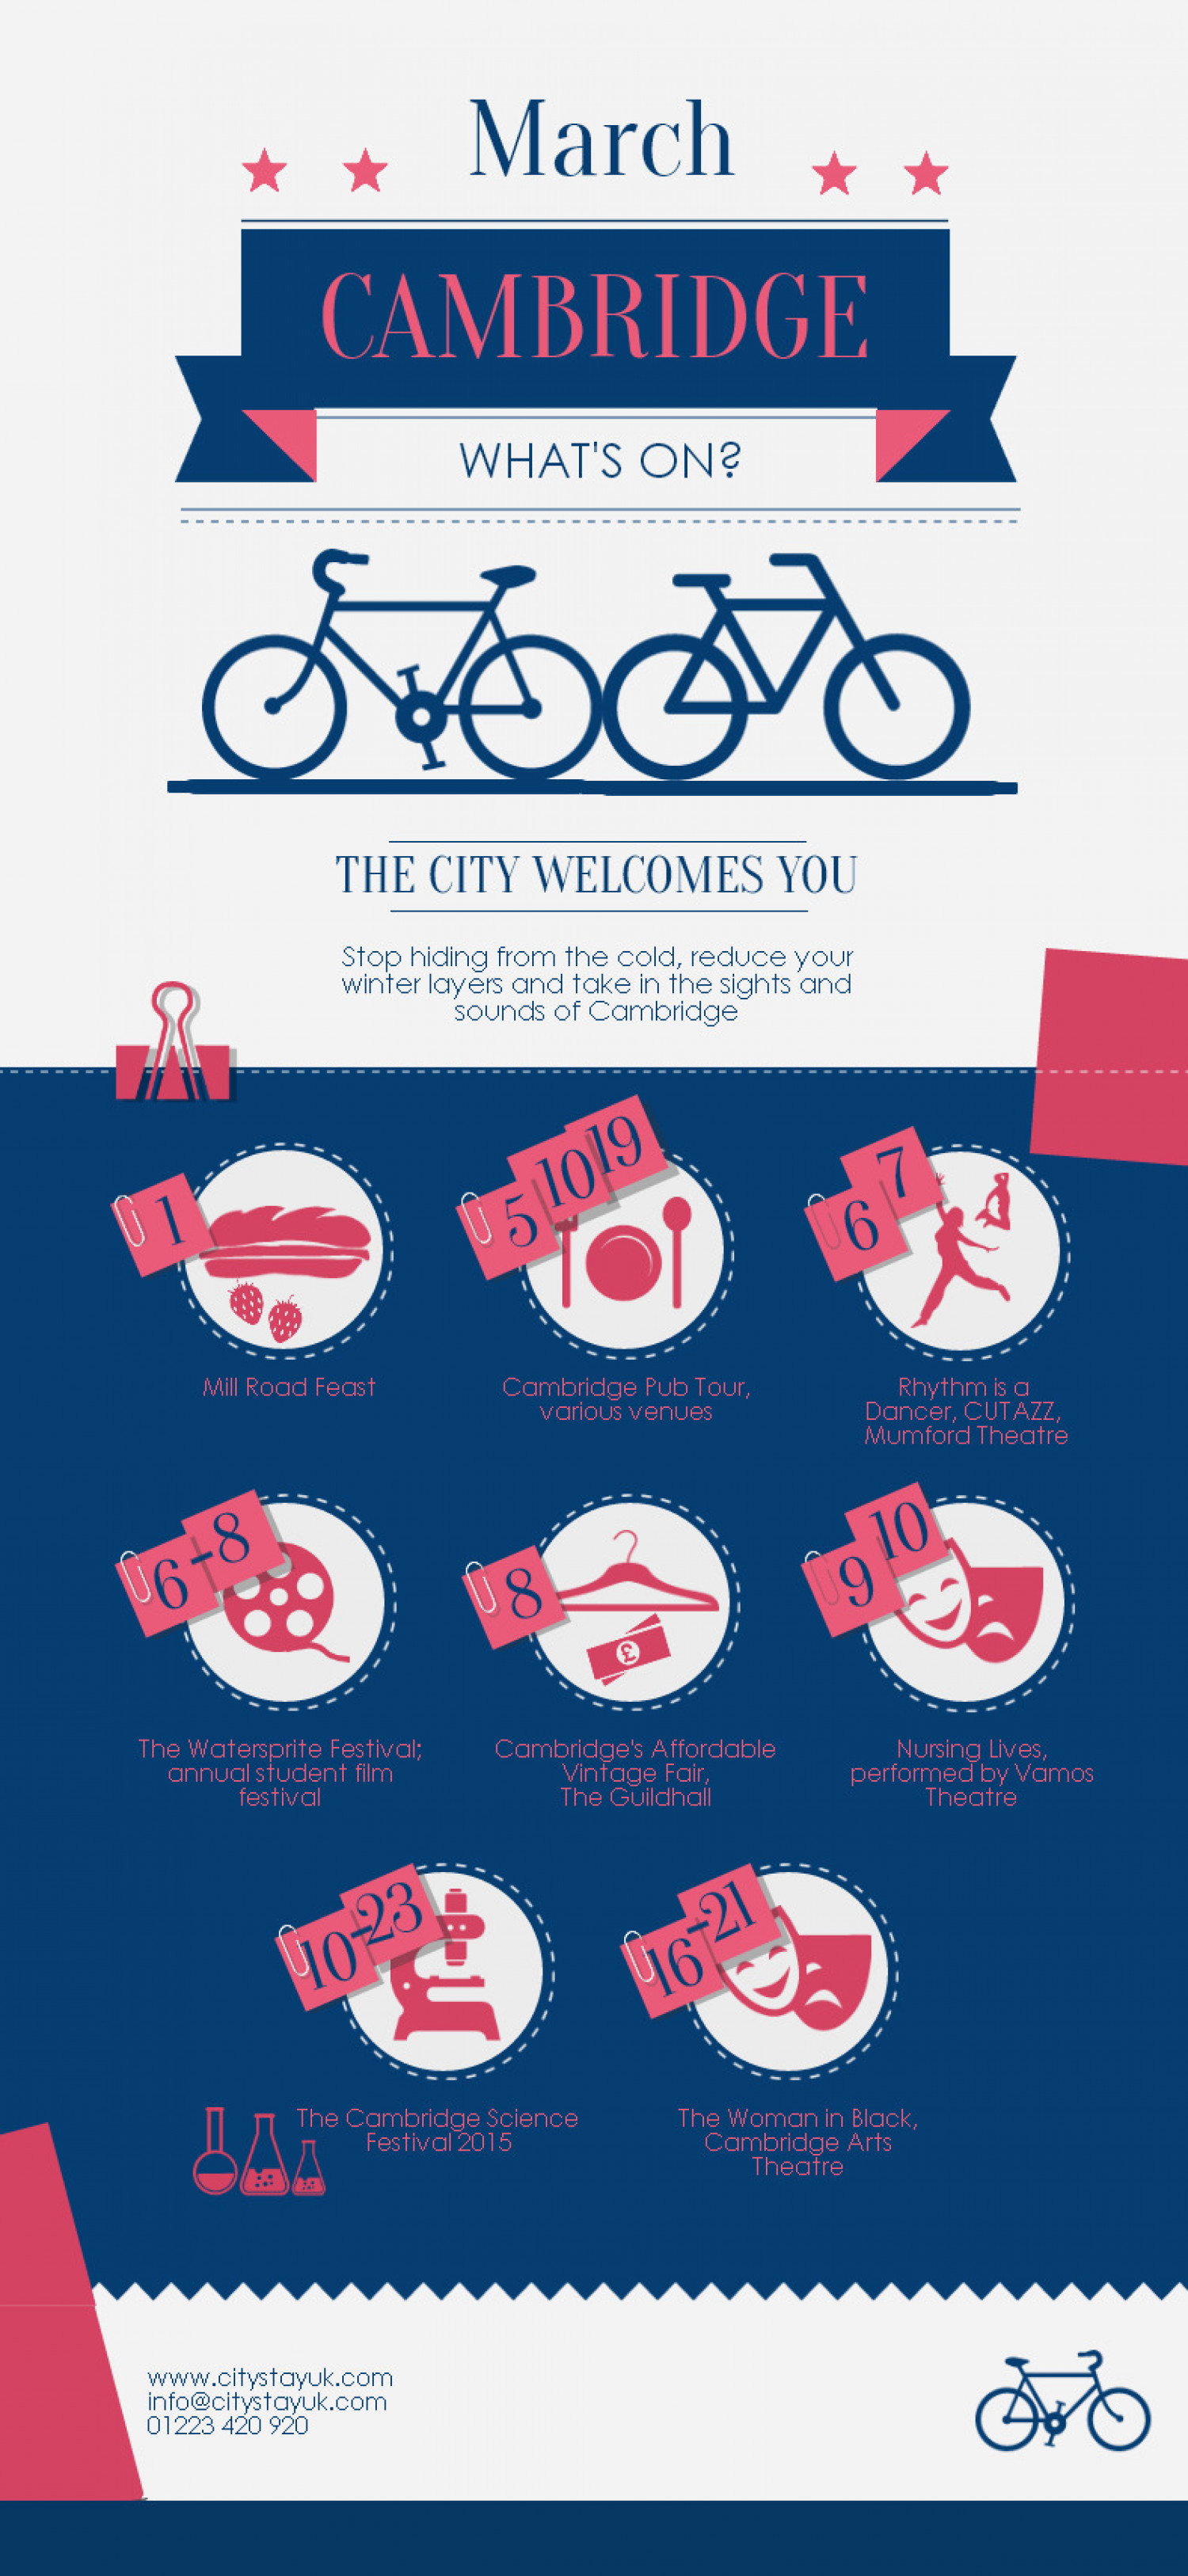 What's Happening in Cambridge this March? Infographic